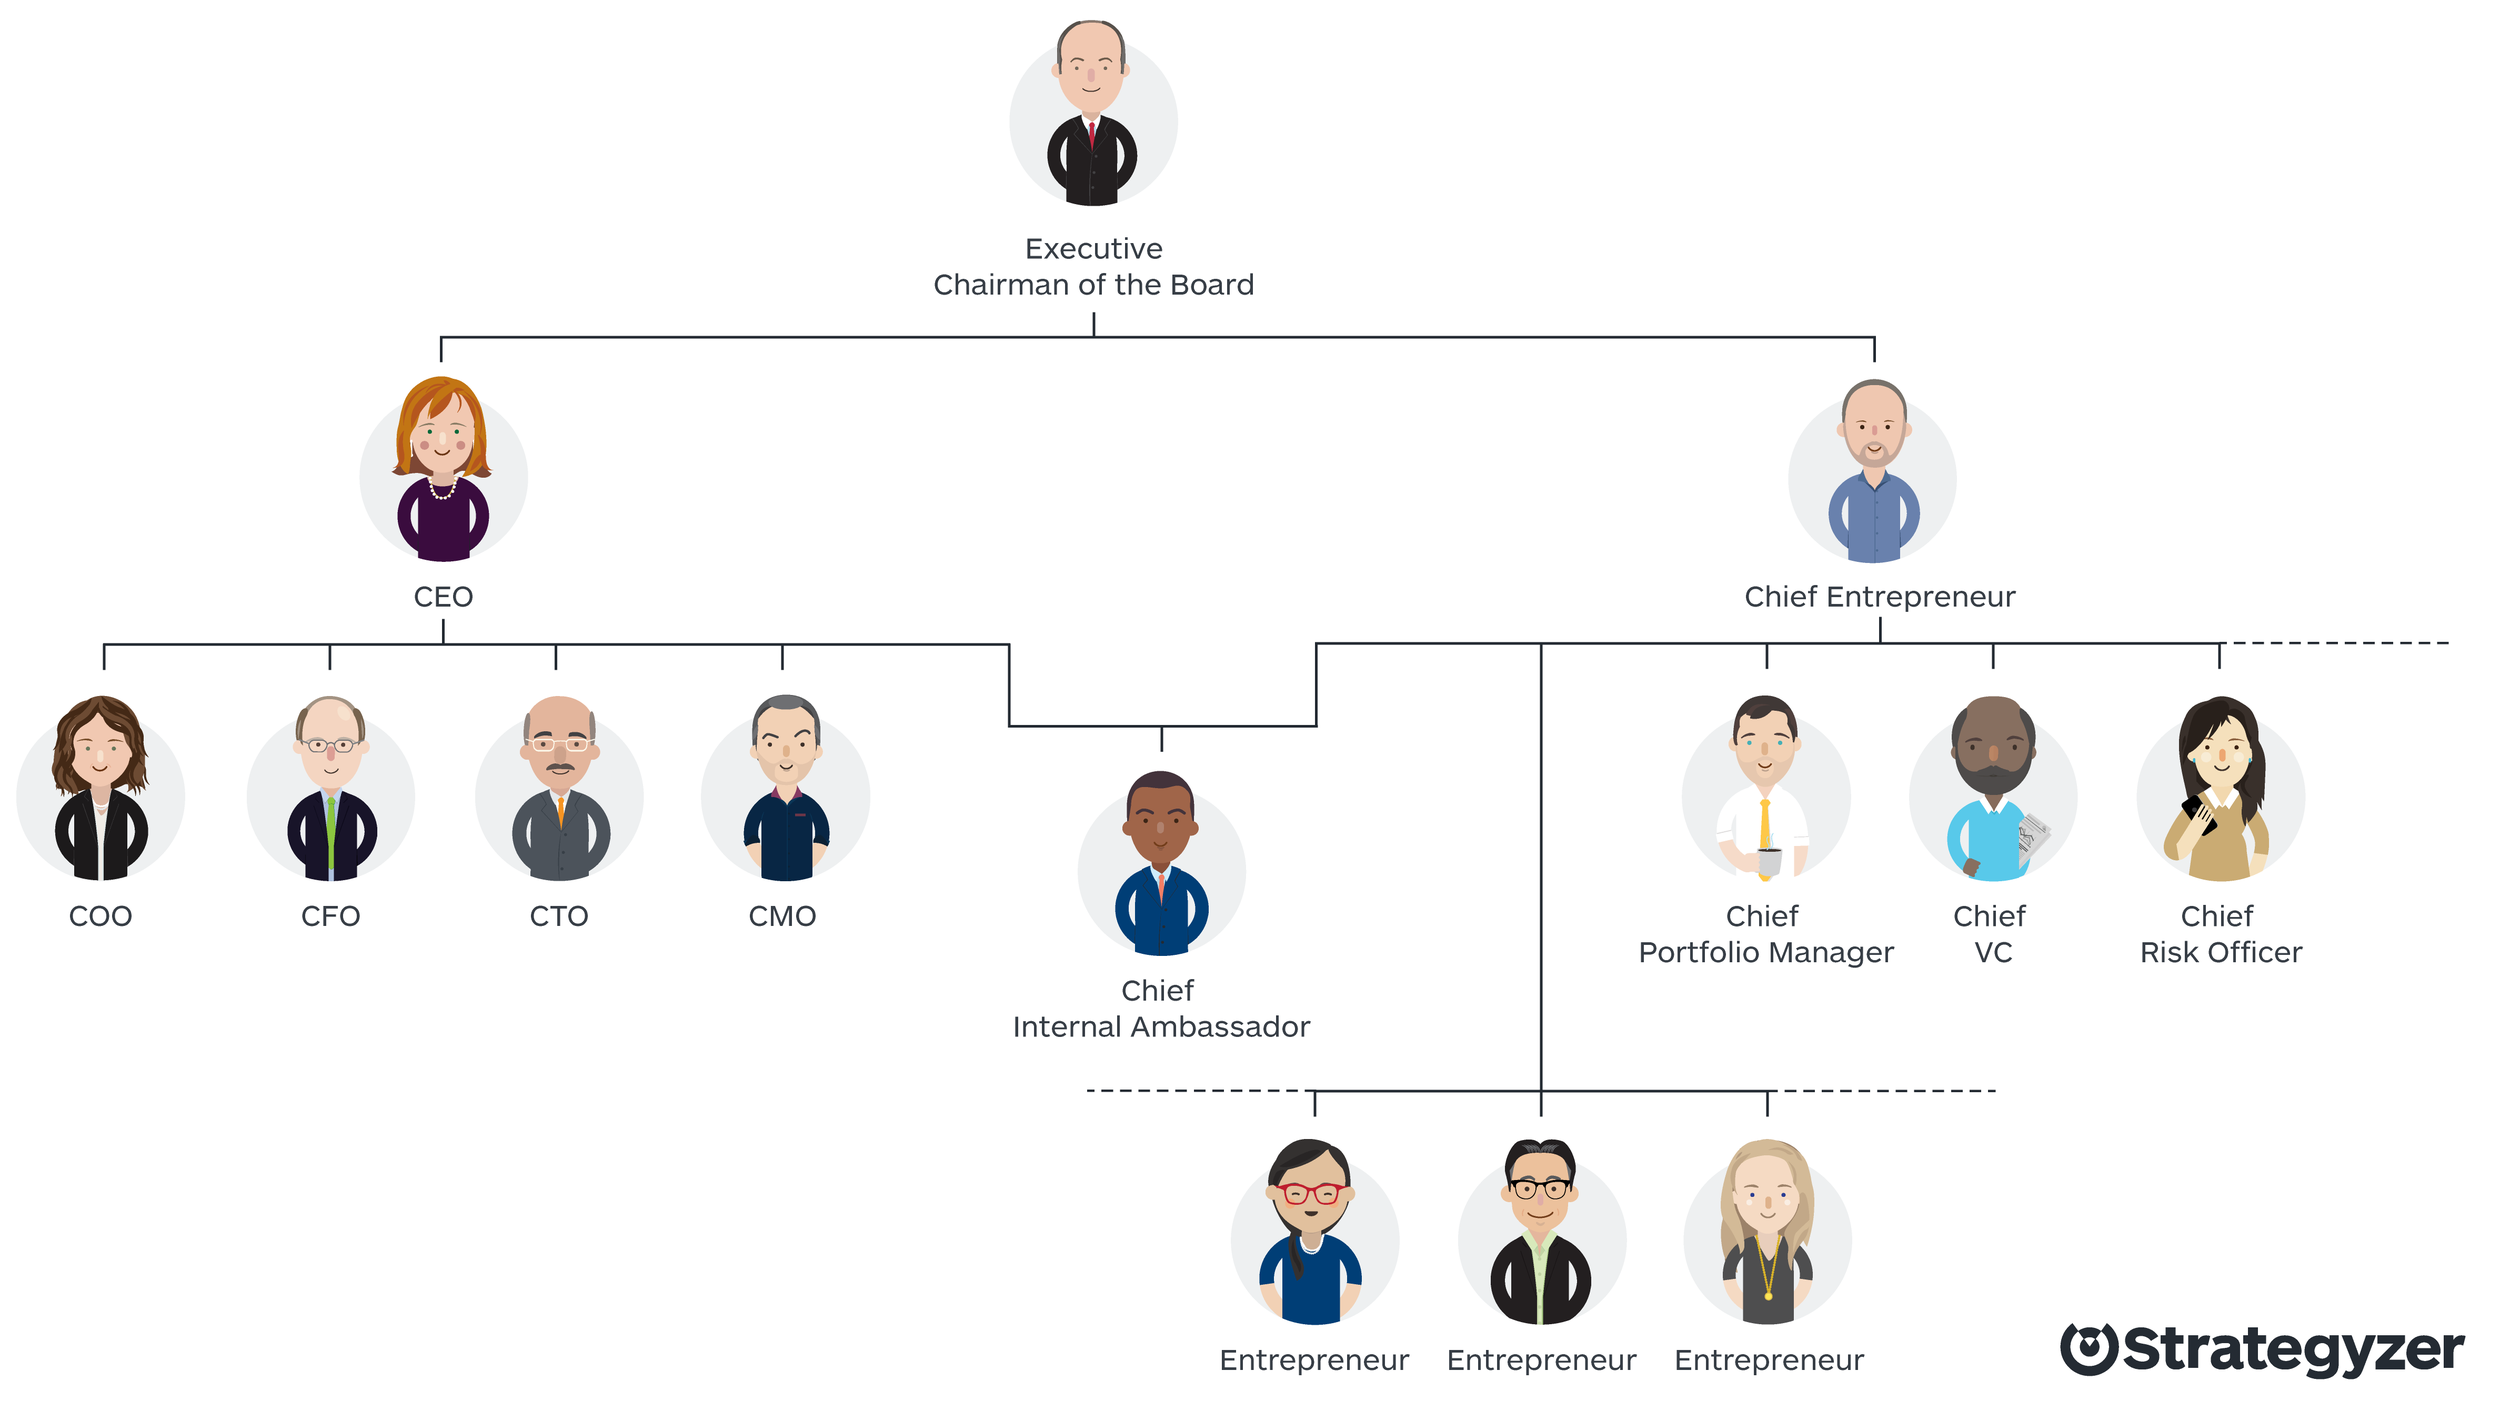 The org chart where CEO and CE lead the charge. I'll dig deeper into each role under the CE in a future post.